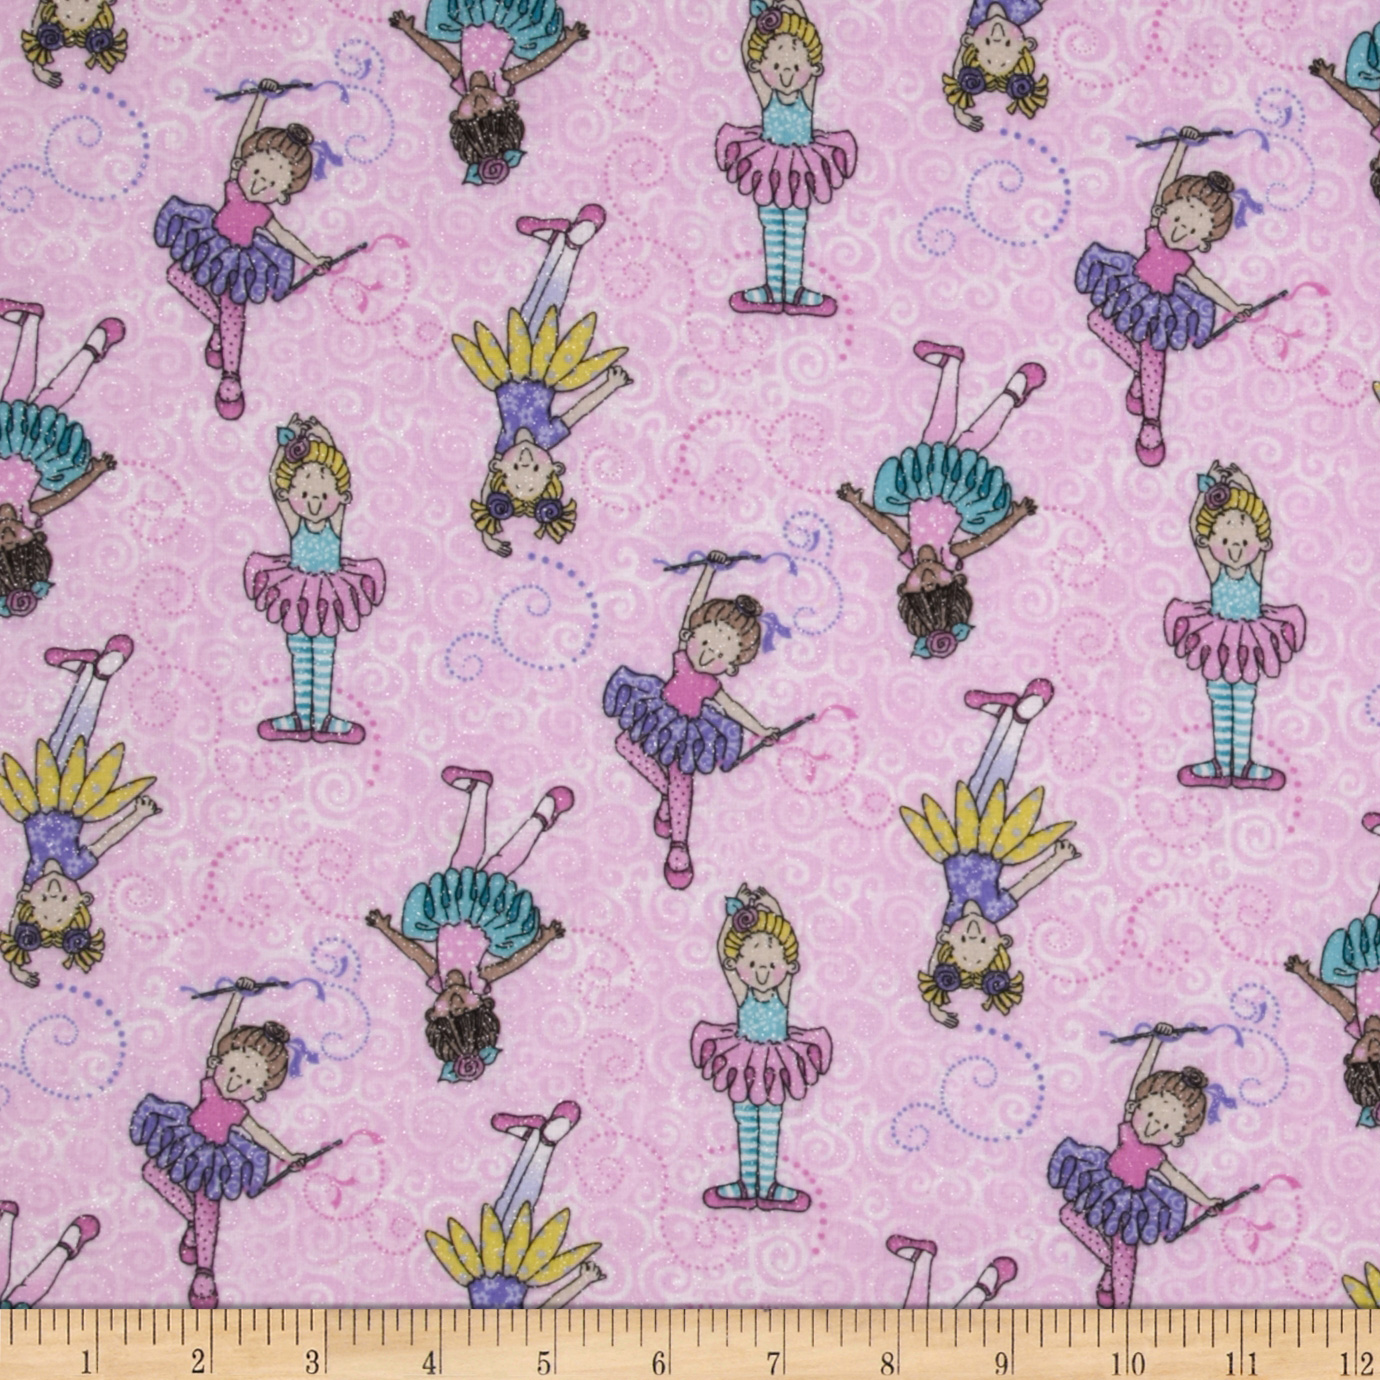 Tippy Toes Glitter Tossed Ballerinas Pink Fabric